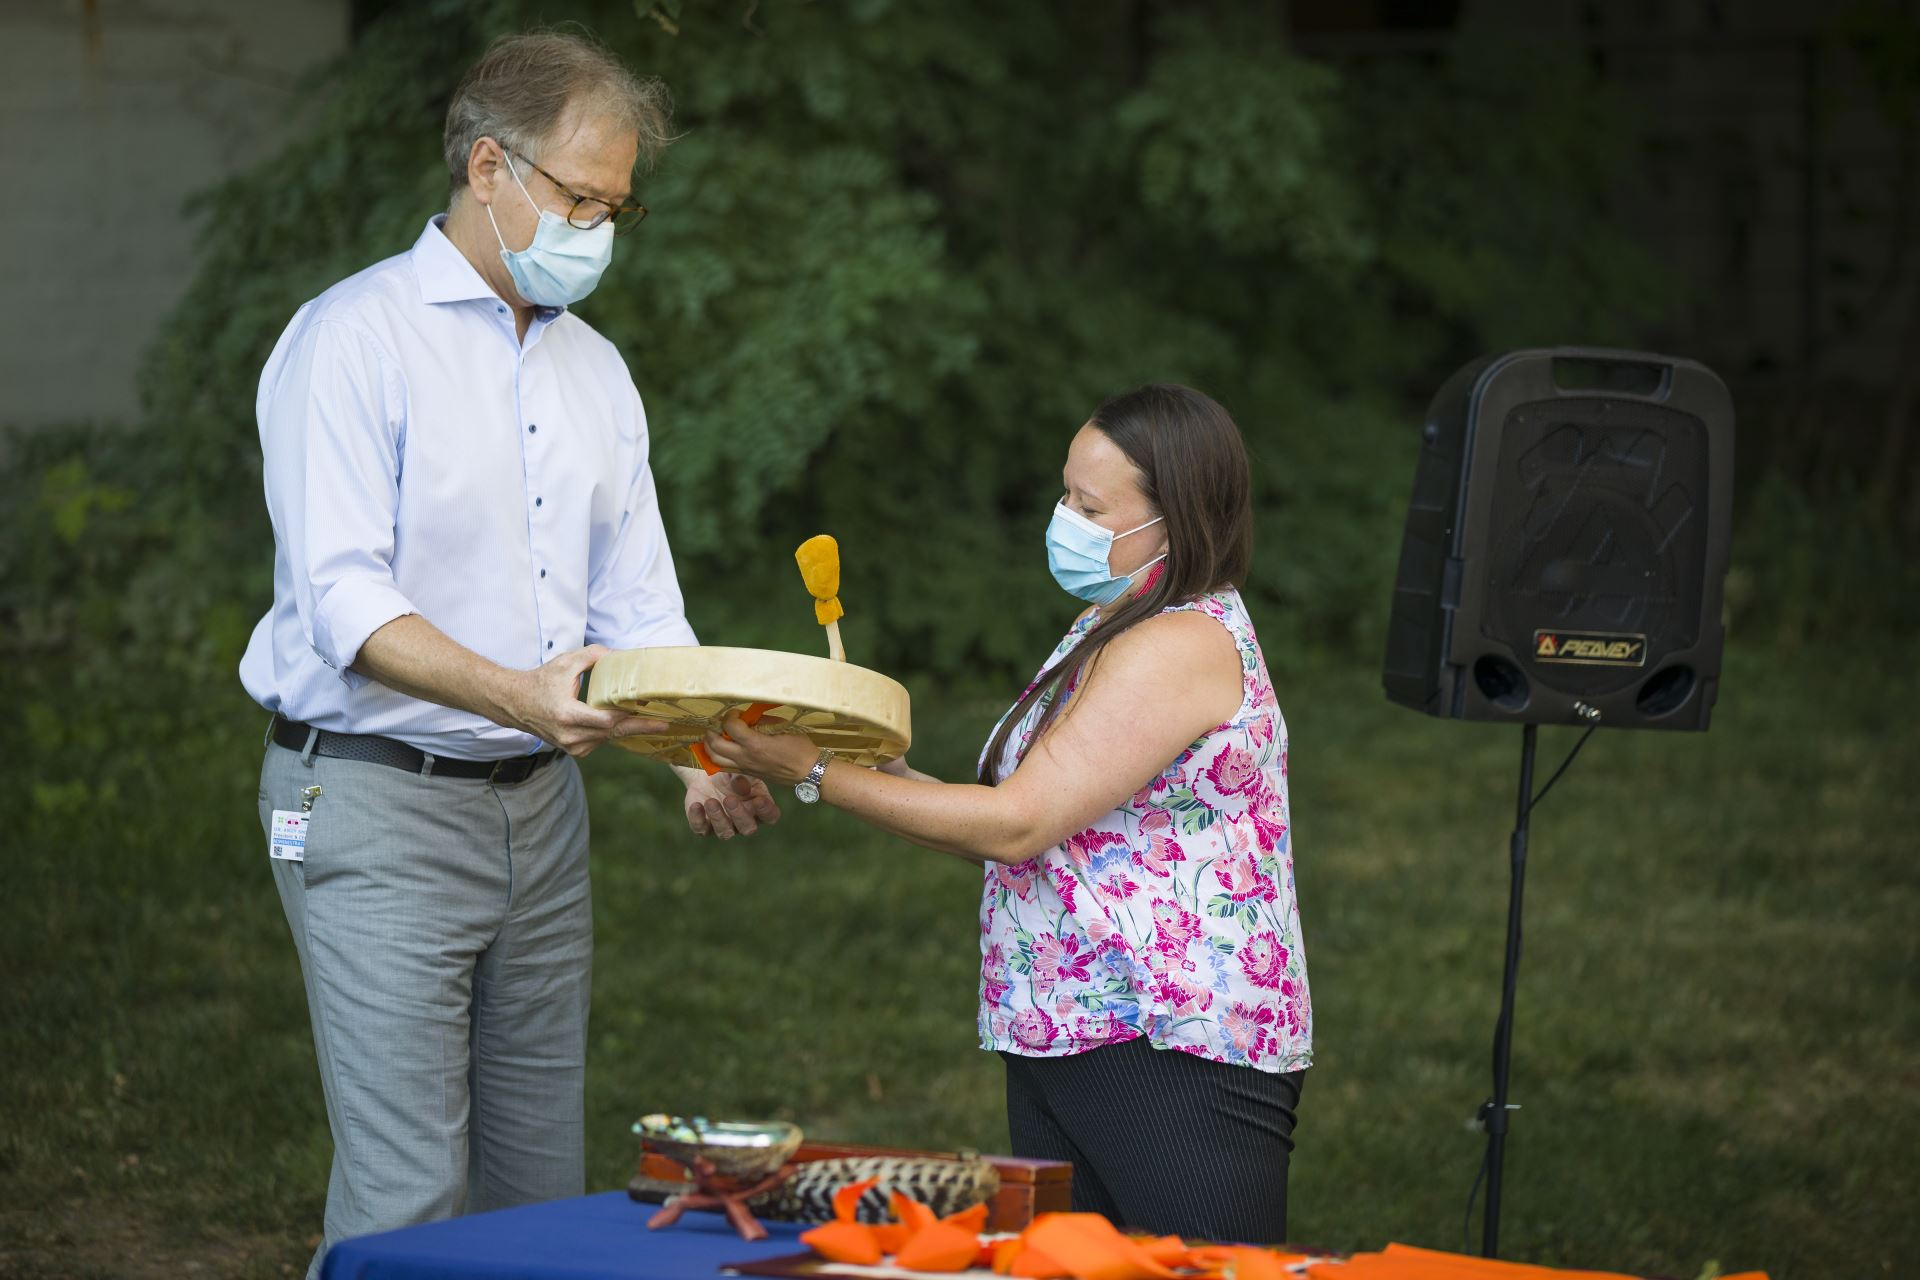 After awakening the drum, Claire Dion Fletcher passes the drum to Dr. Andy Smith.